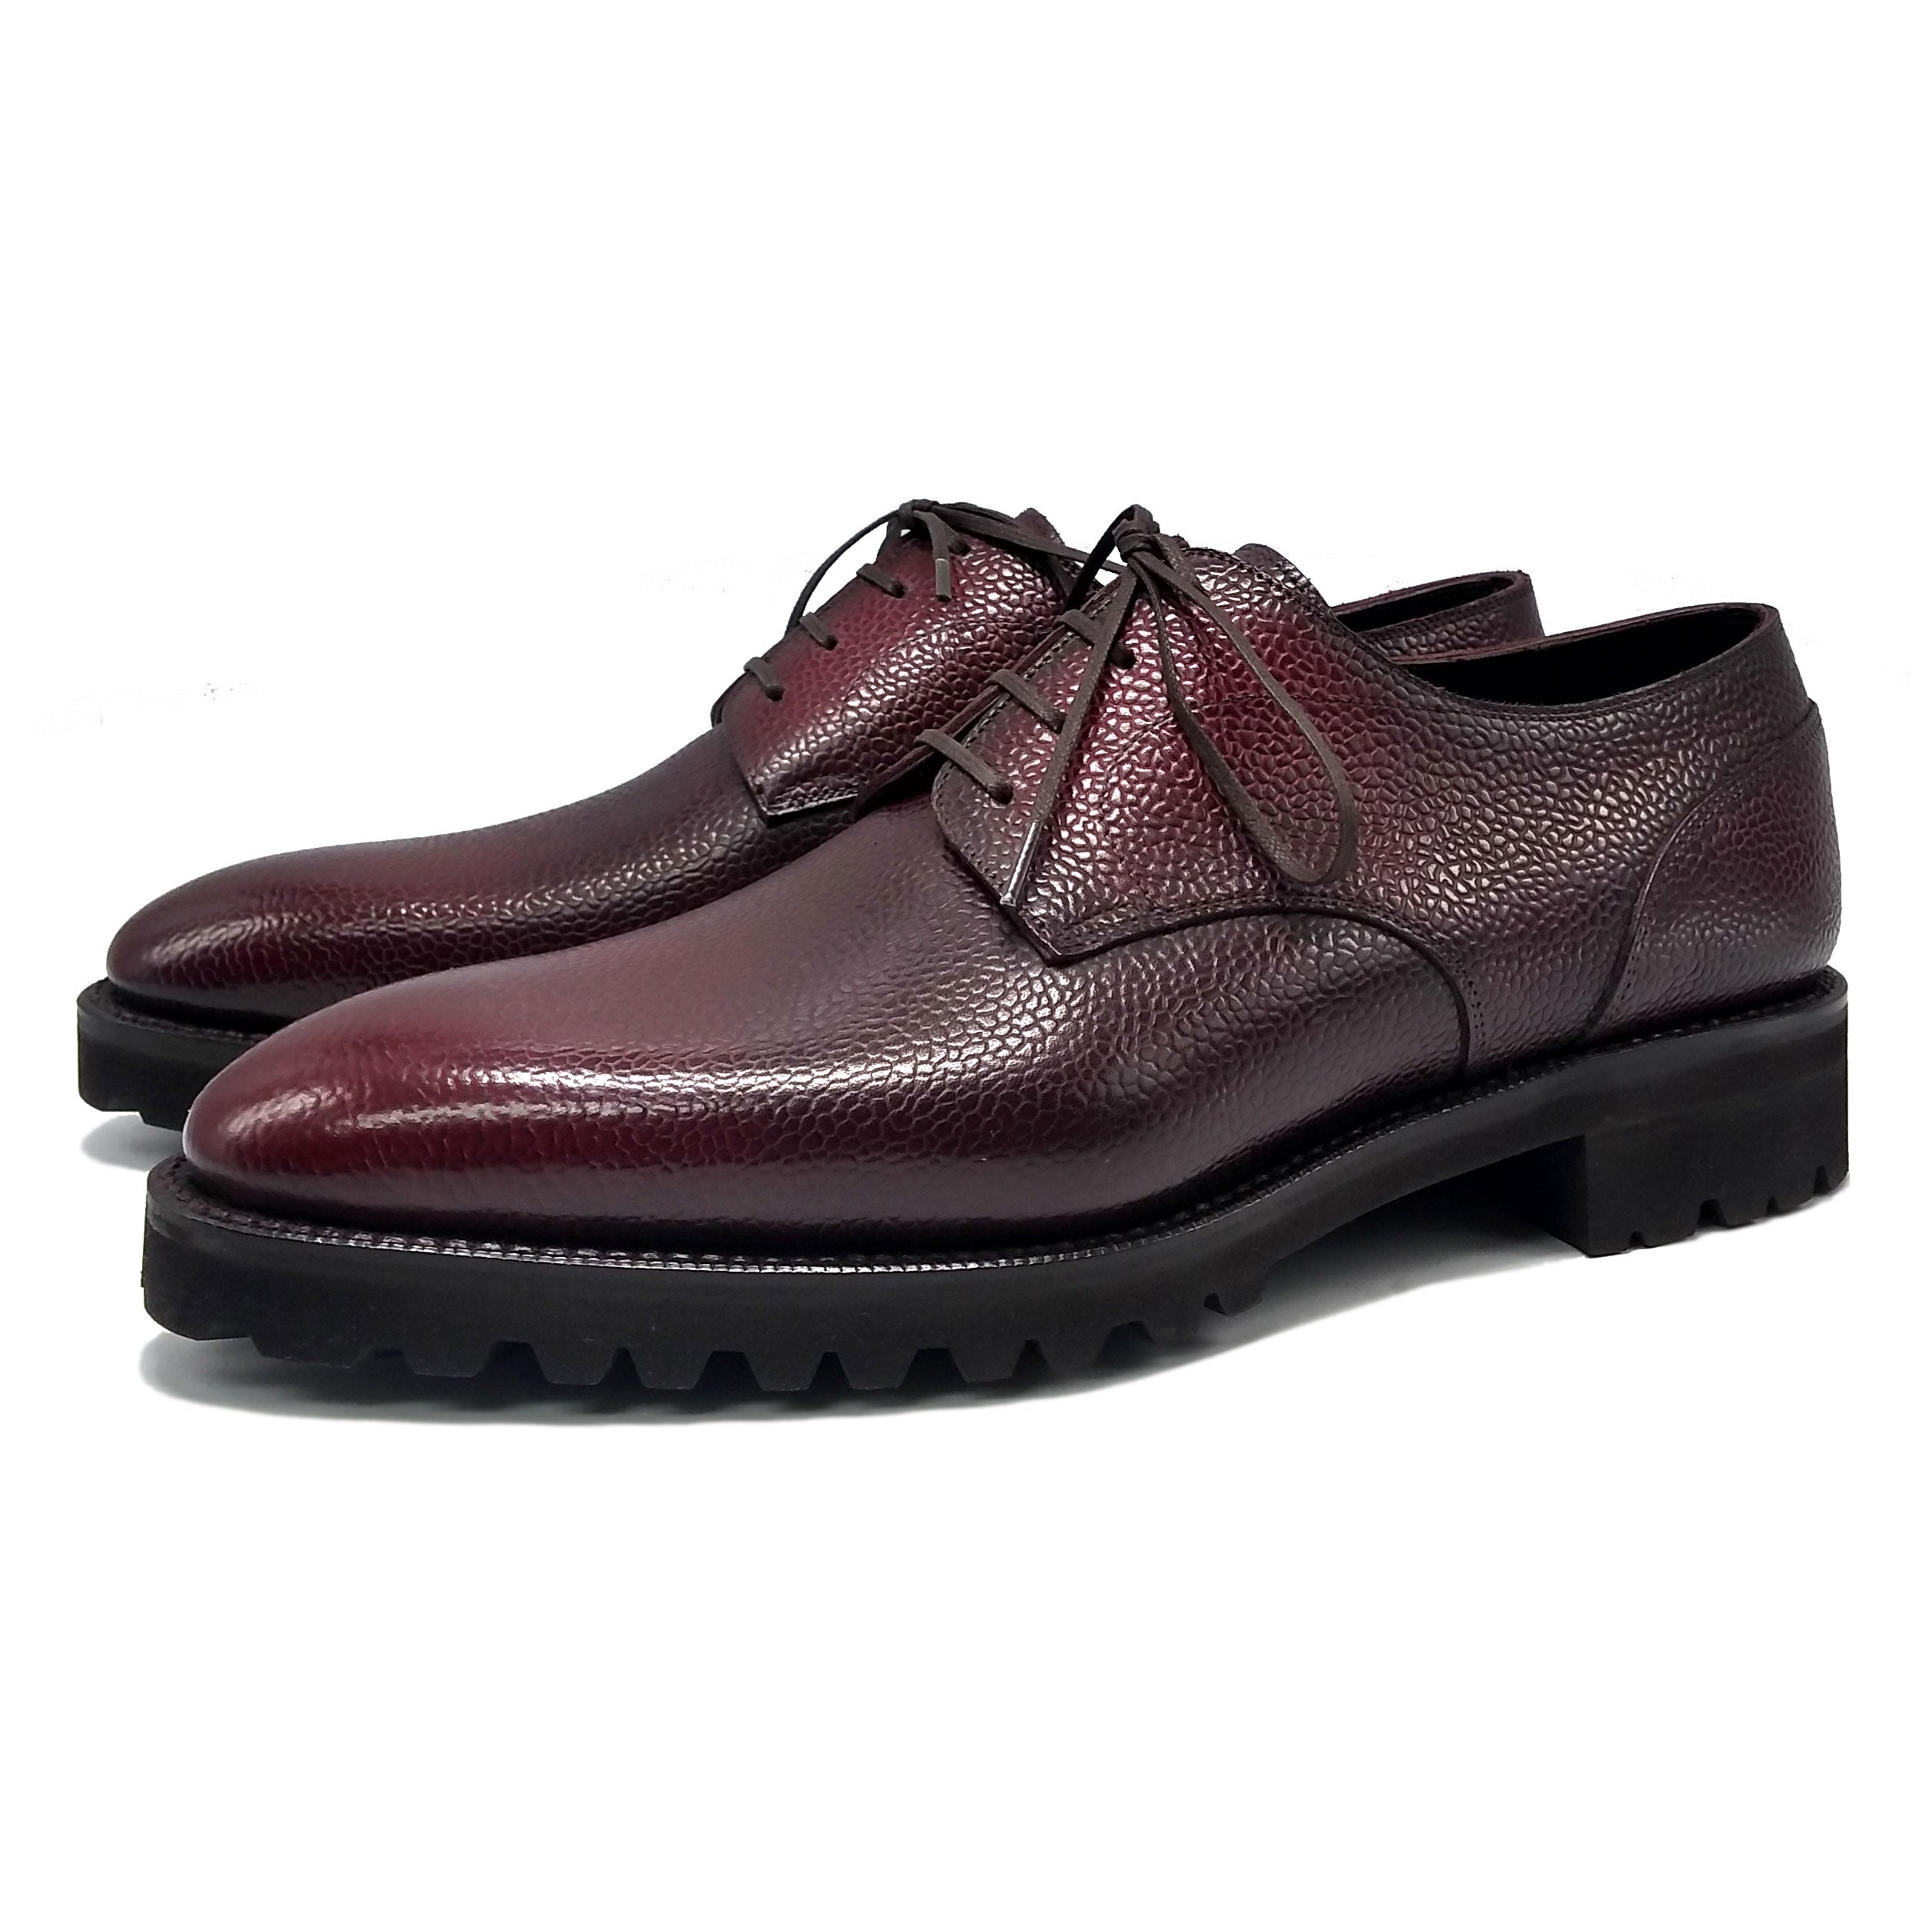 Derby Simple Shoe - Oxblood 3D Patina